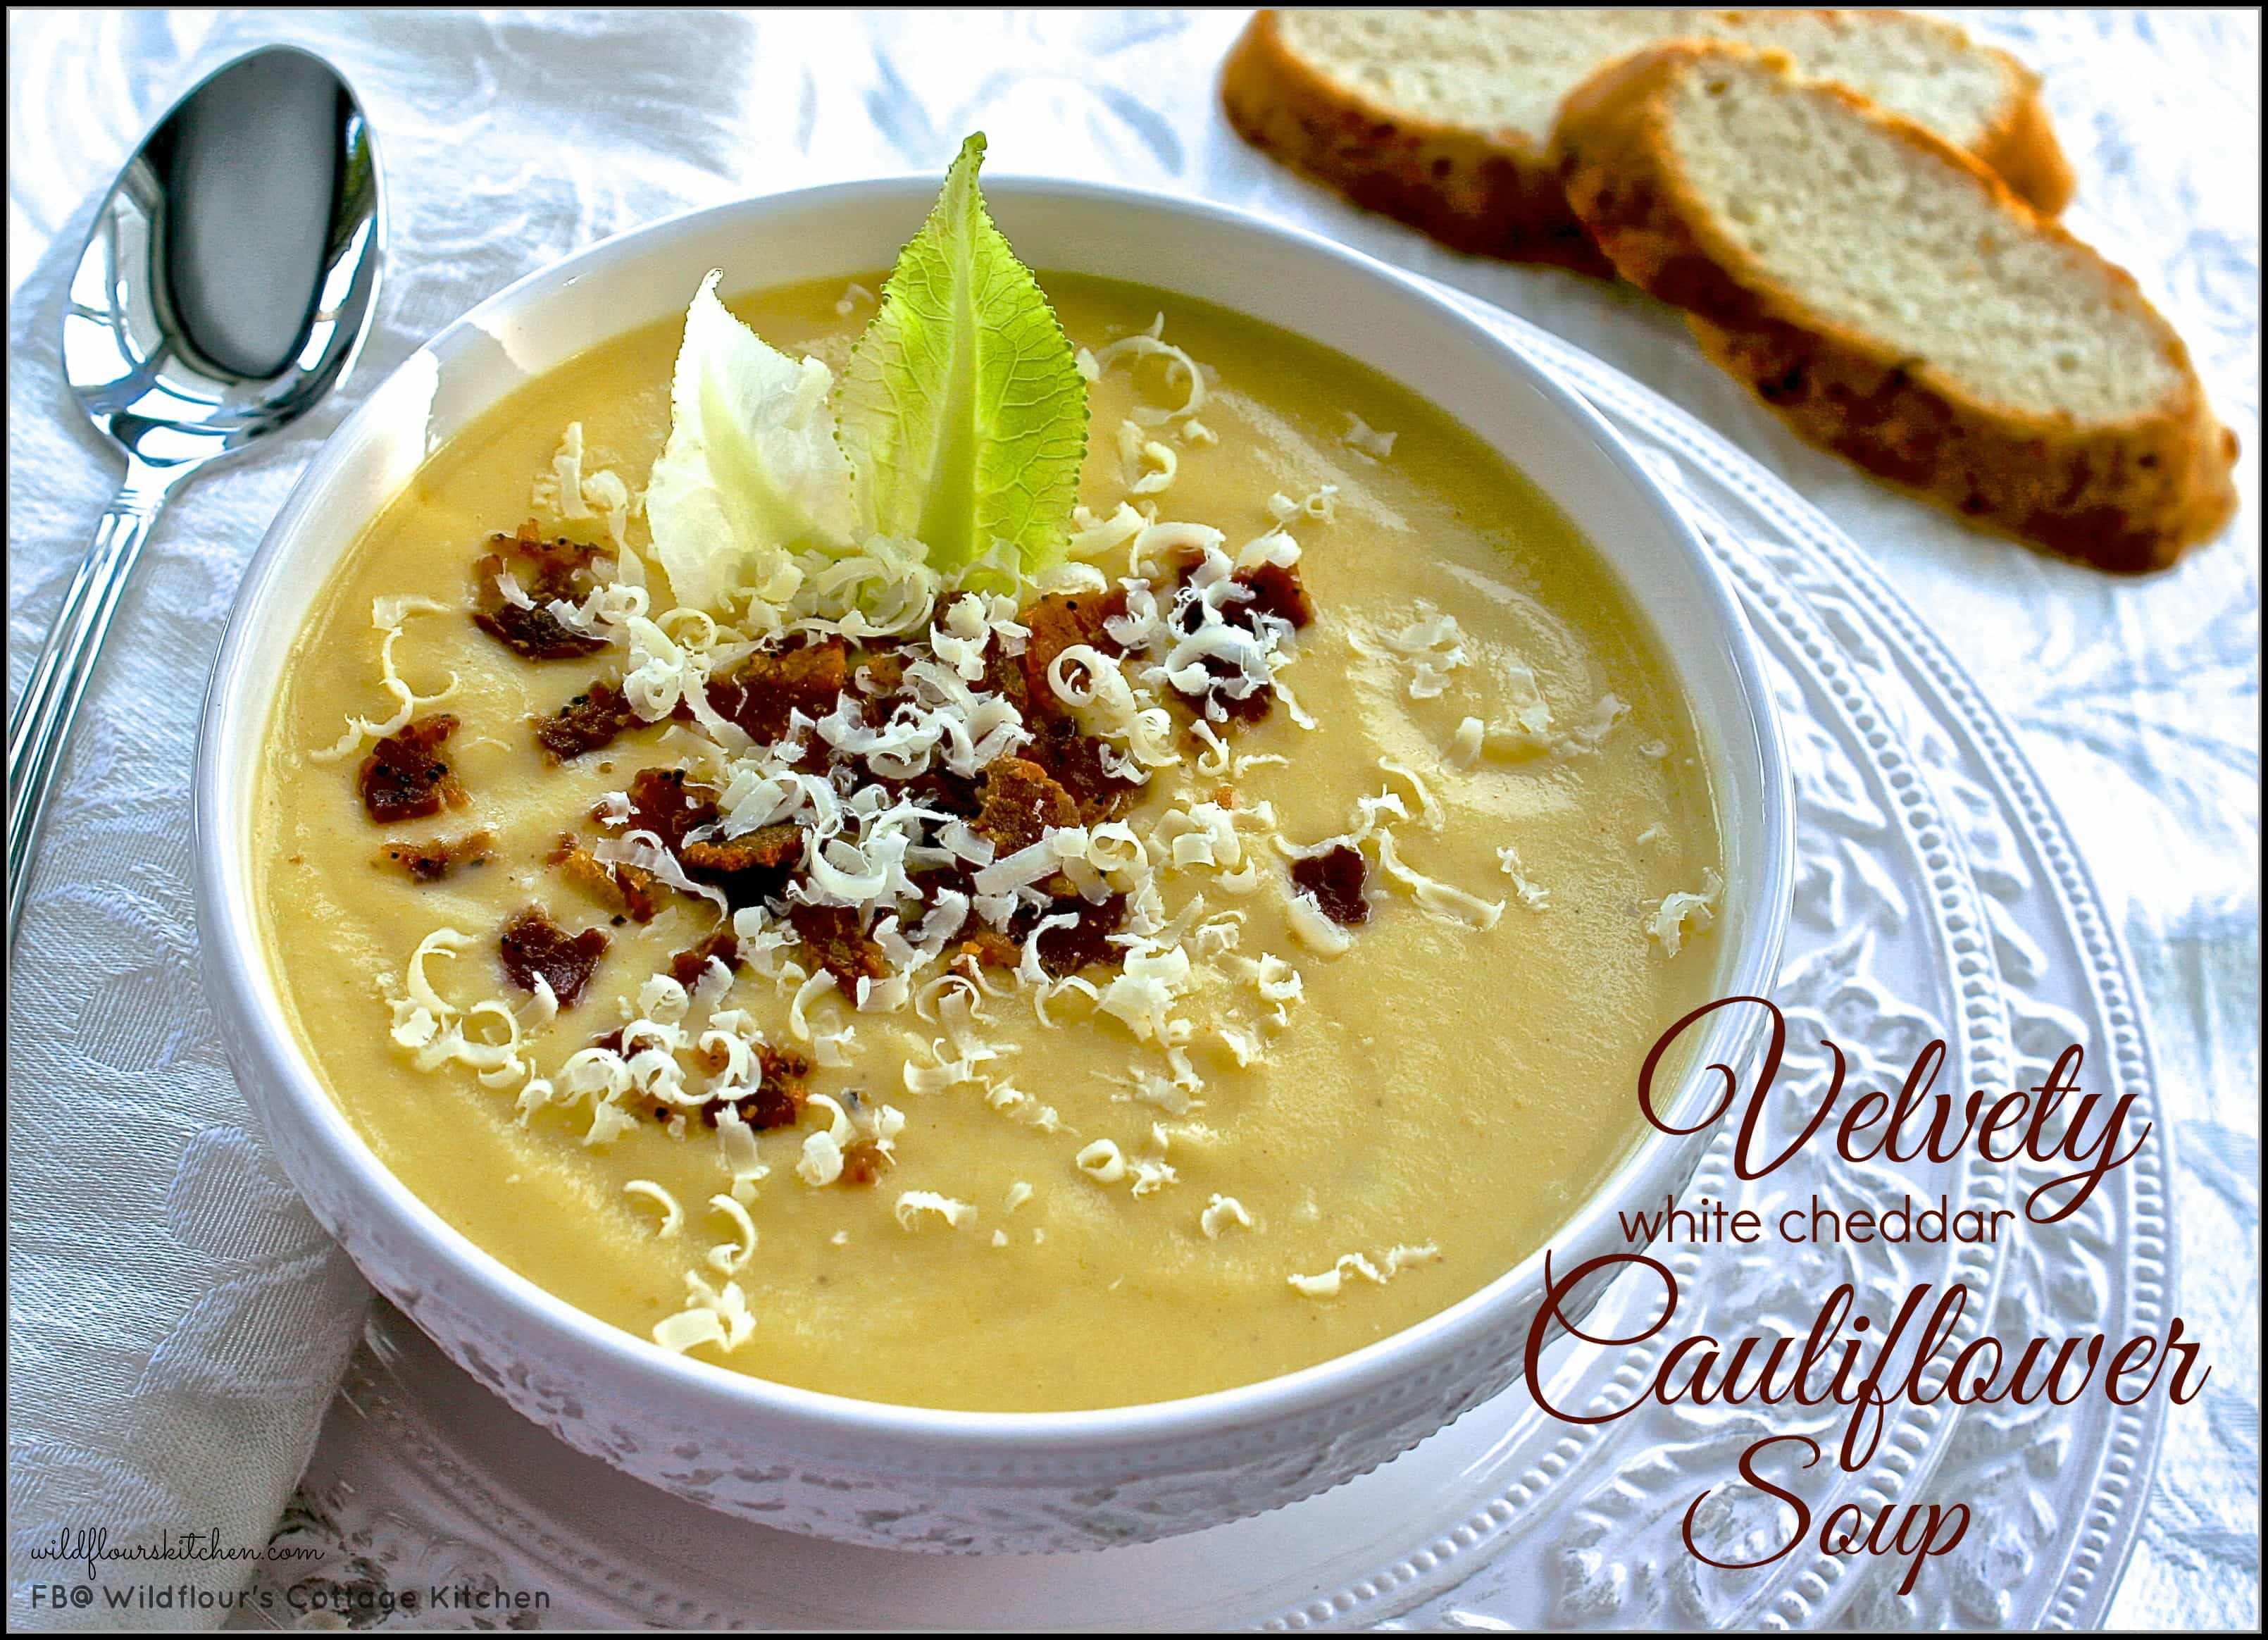 ... soup with dill recipes dishmaps cauliflower and white cheddar soup